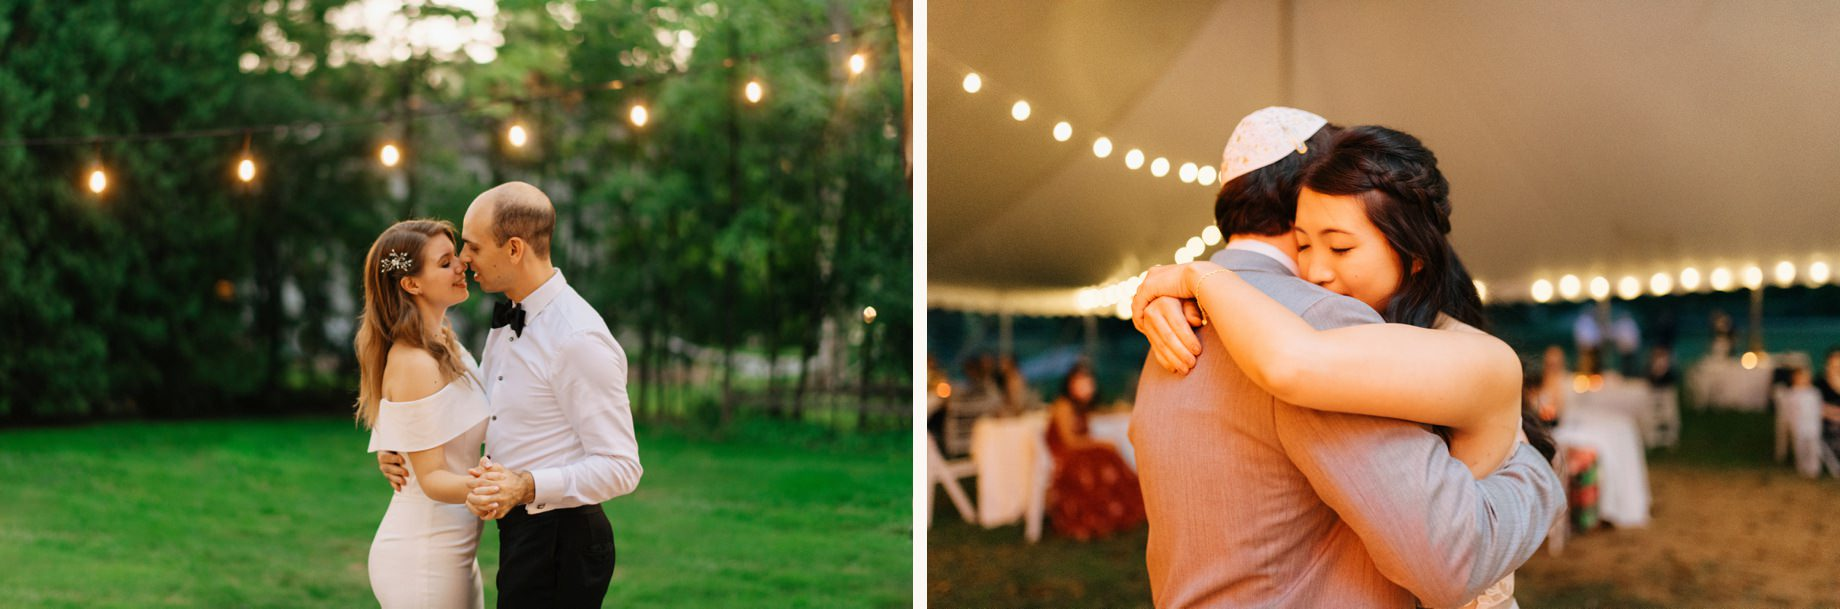 an intimate first dance during a backyard wedding in the covid era